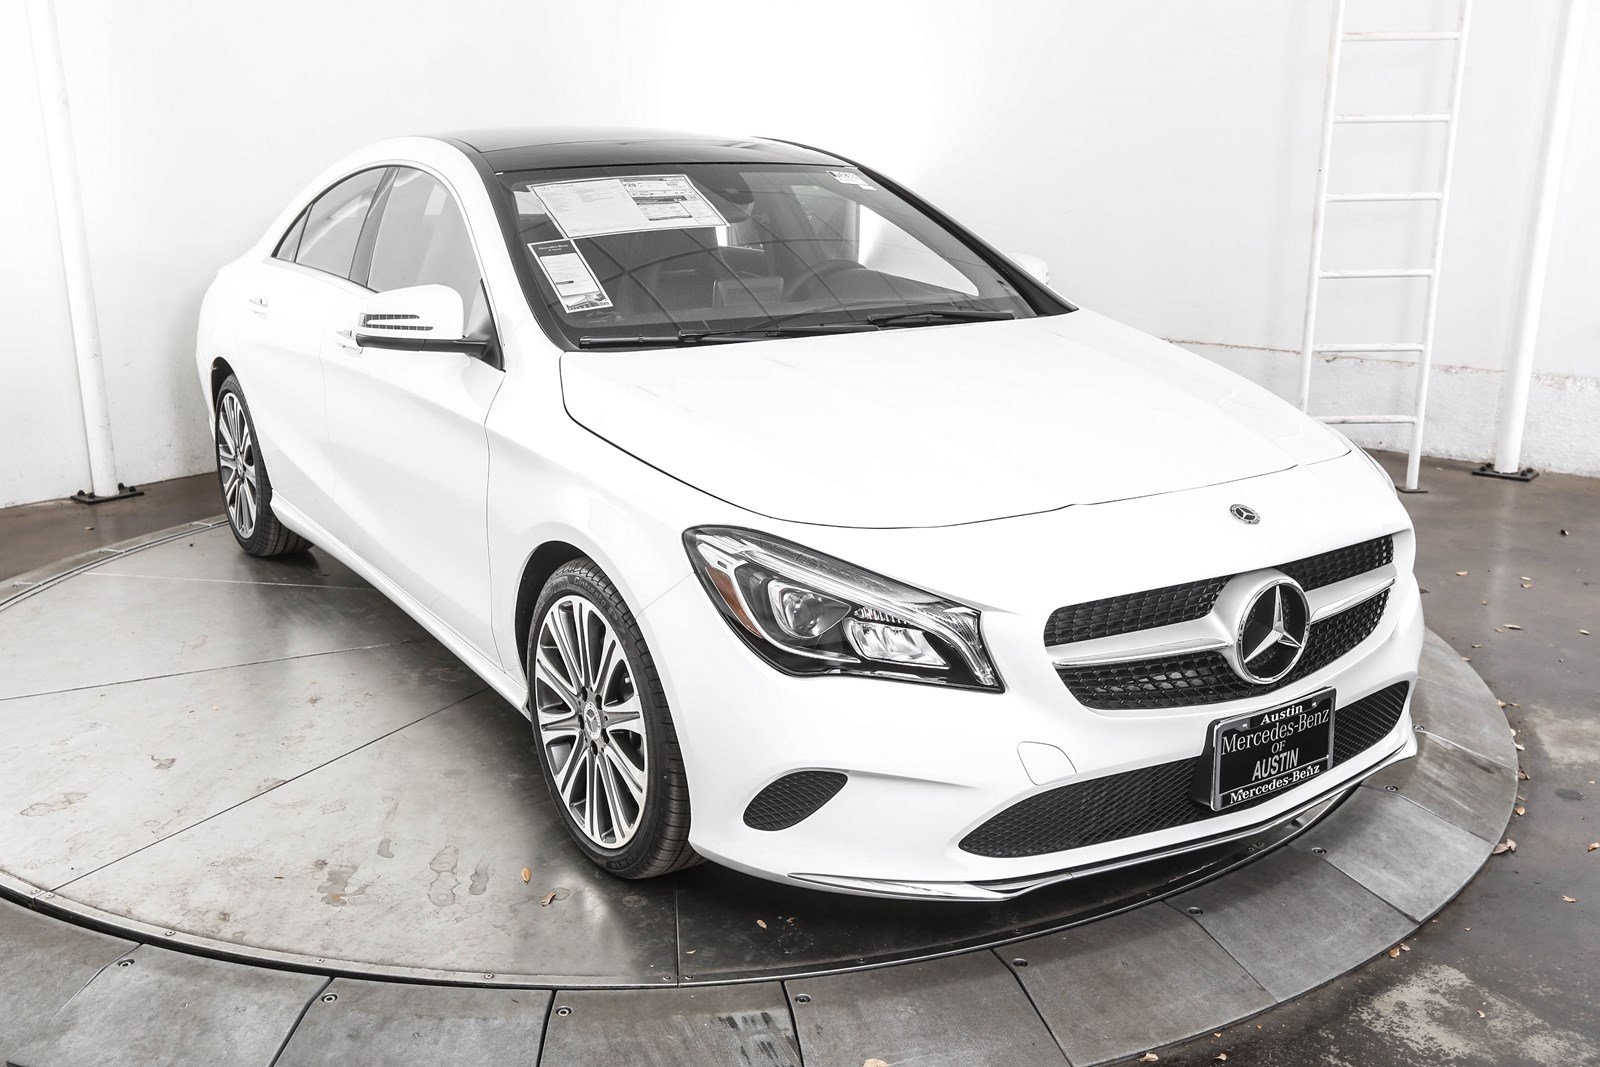 New 2018 mercedes benz cla cla 250 coupe in austin m58388 for Mercedes benz cla 250 msrp